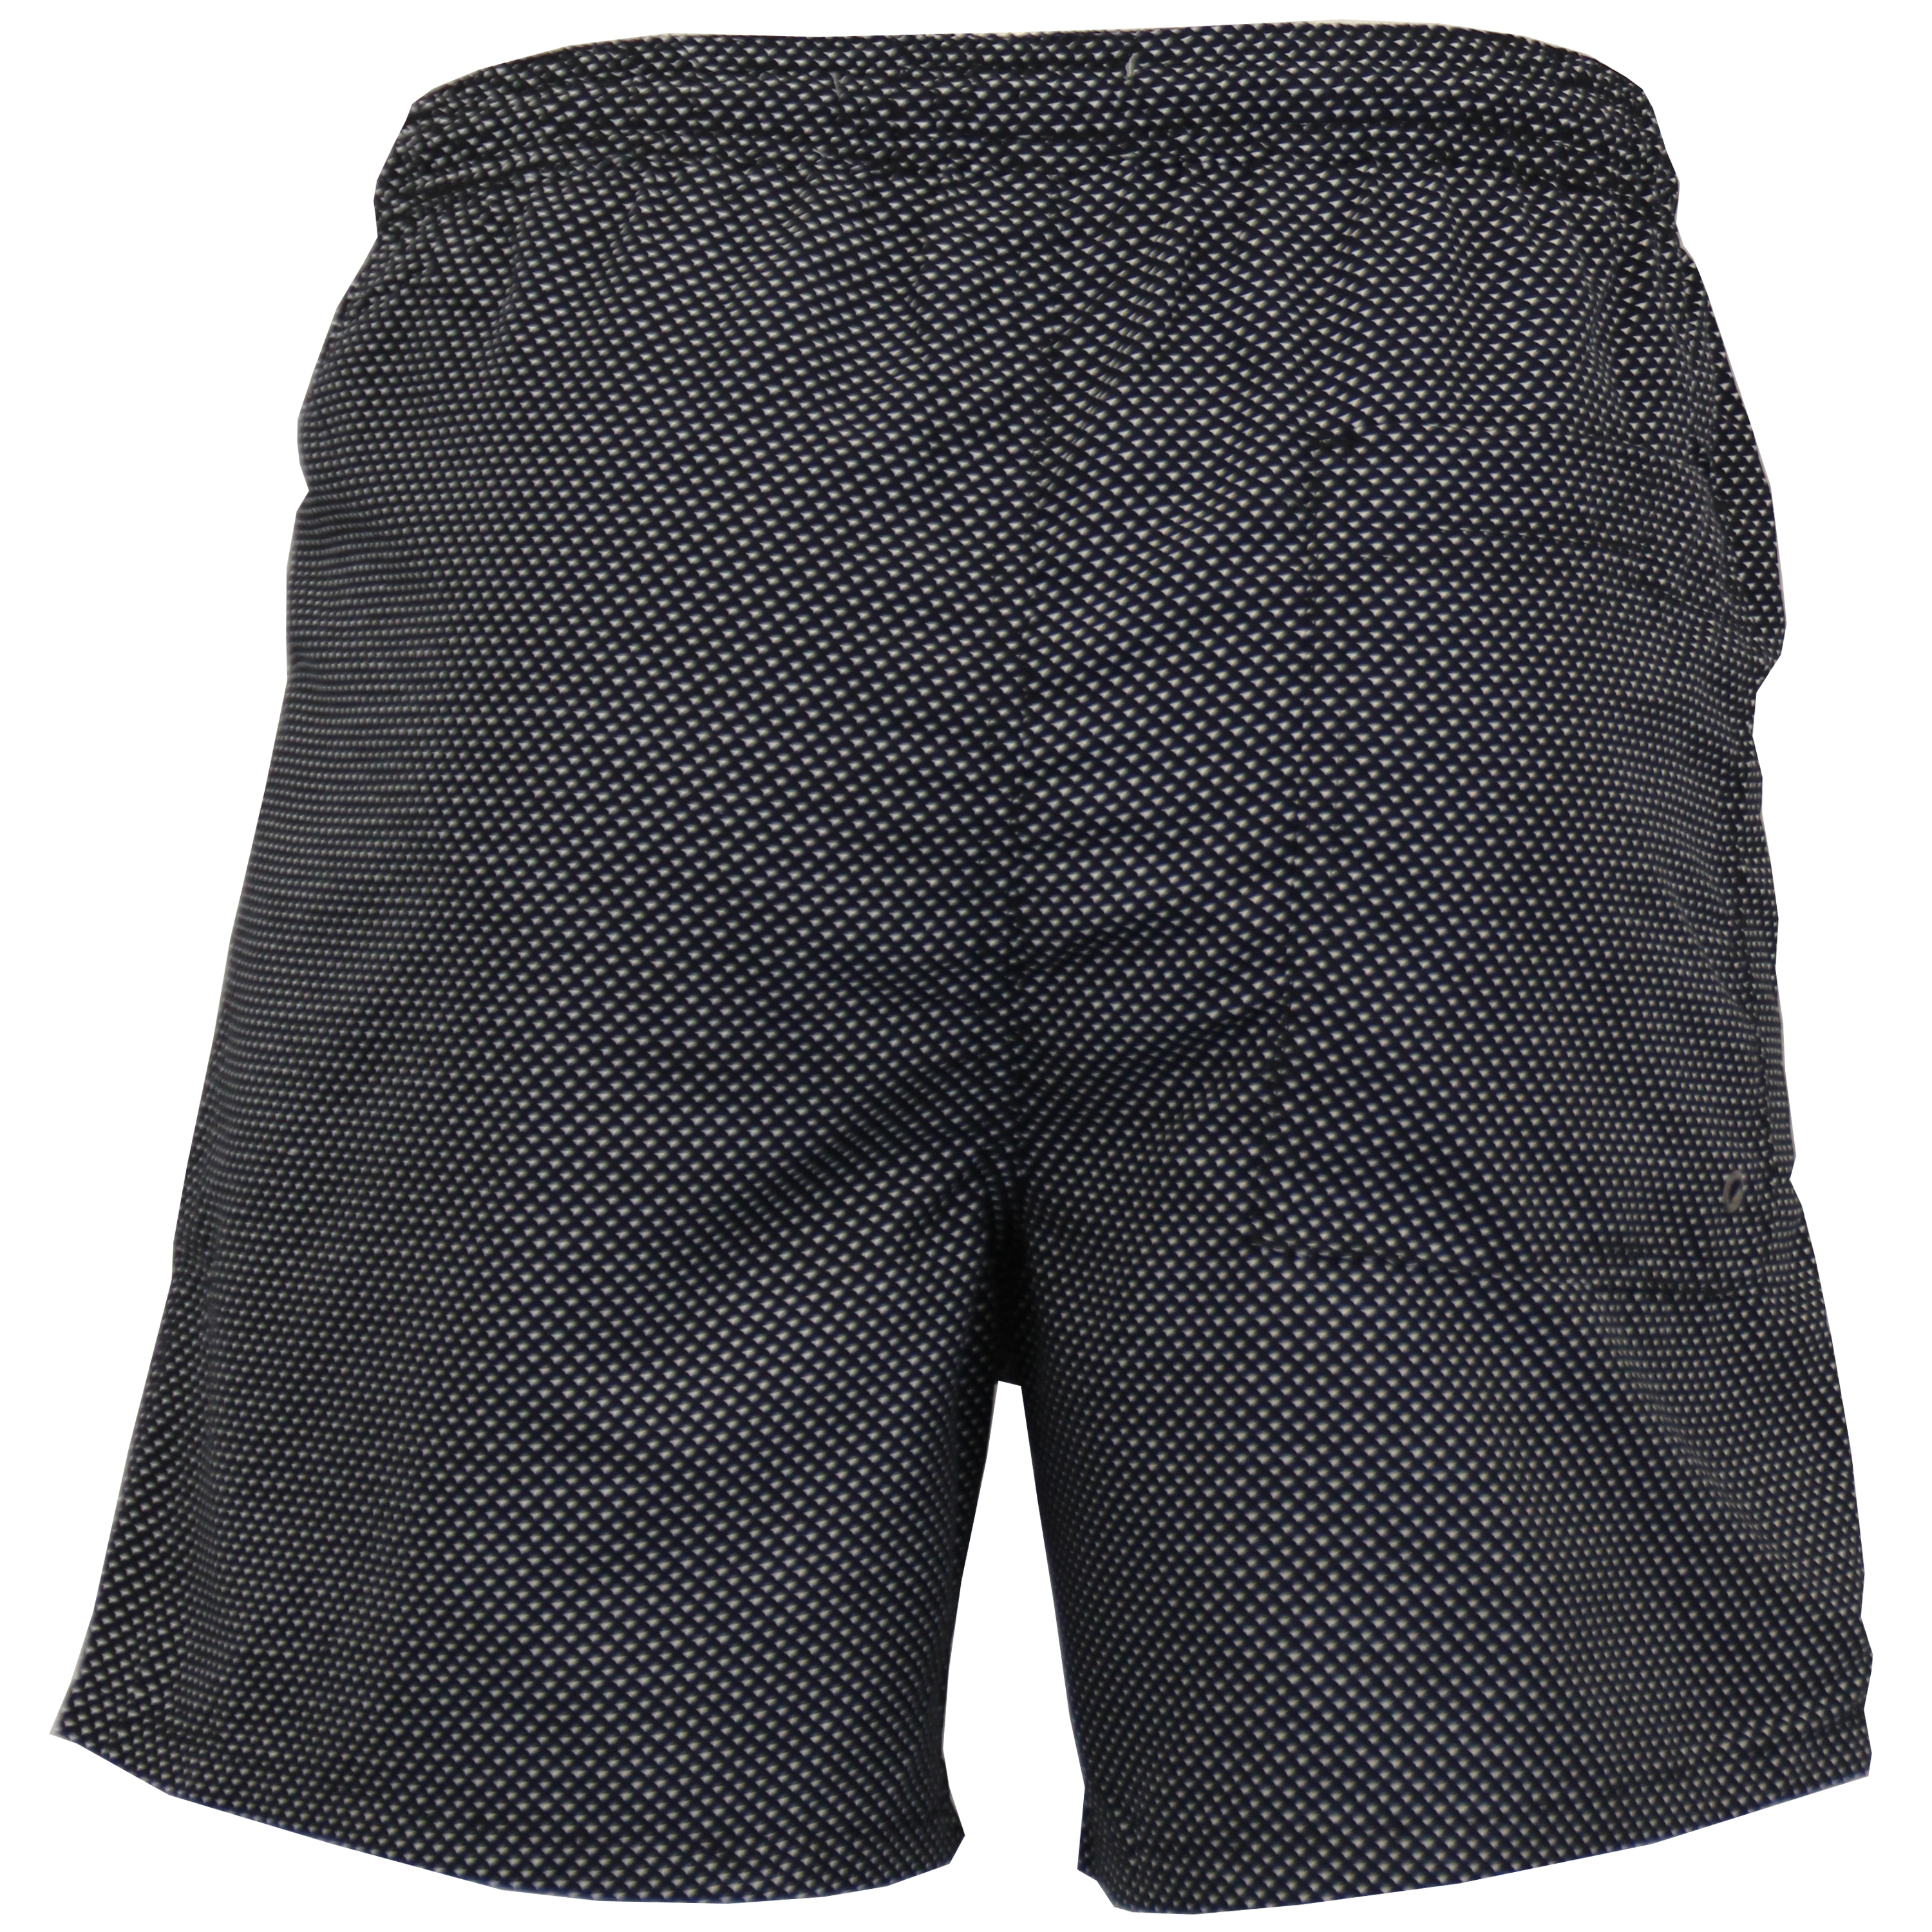 Mens-Swimming-Shorts-Brave-Soul-Camo-Military-Trunks-Mesh-Lined-Beach-Summer-New thumbnail 6